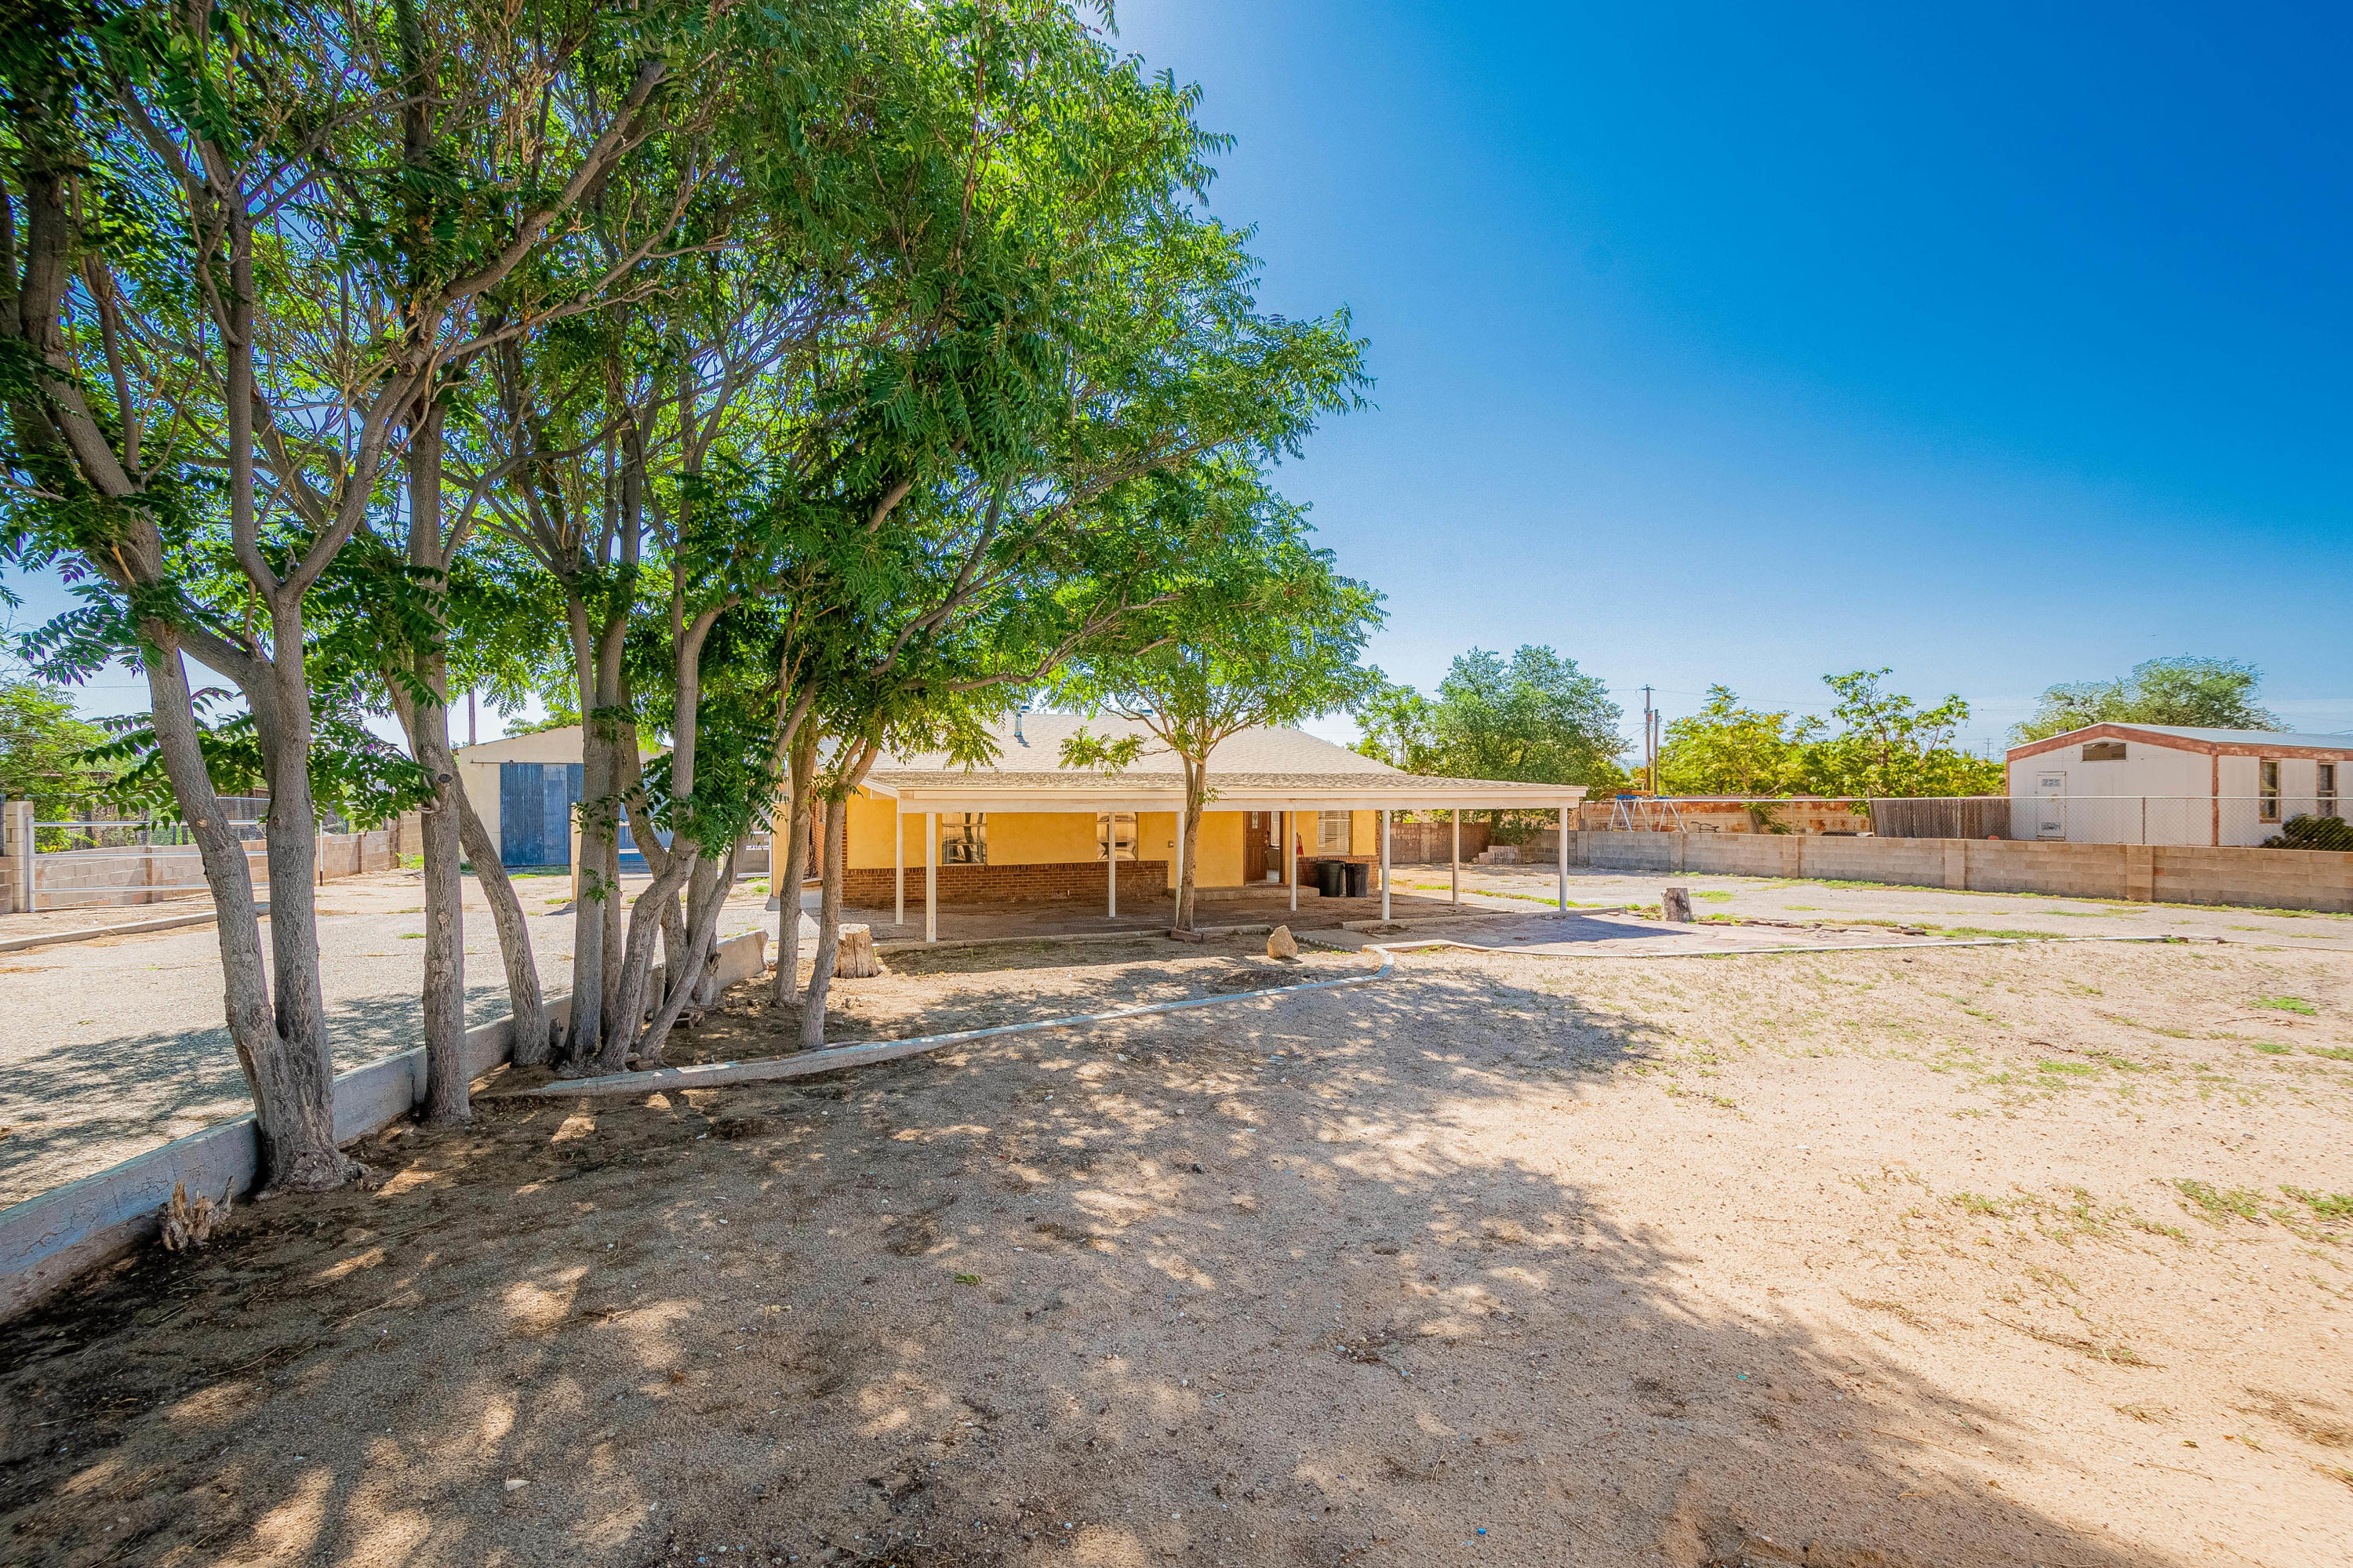 Great home on huge 1/2 acre lot perfect for someone who need space. Home has newer roof and many recent upgrades.. too many to list. Don't wait if your looking for a great home on a large lot